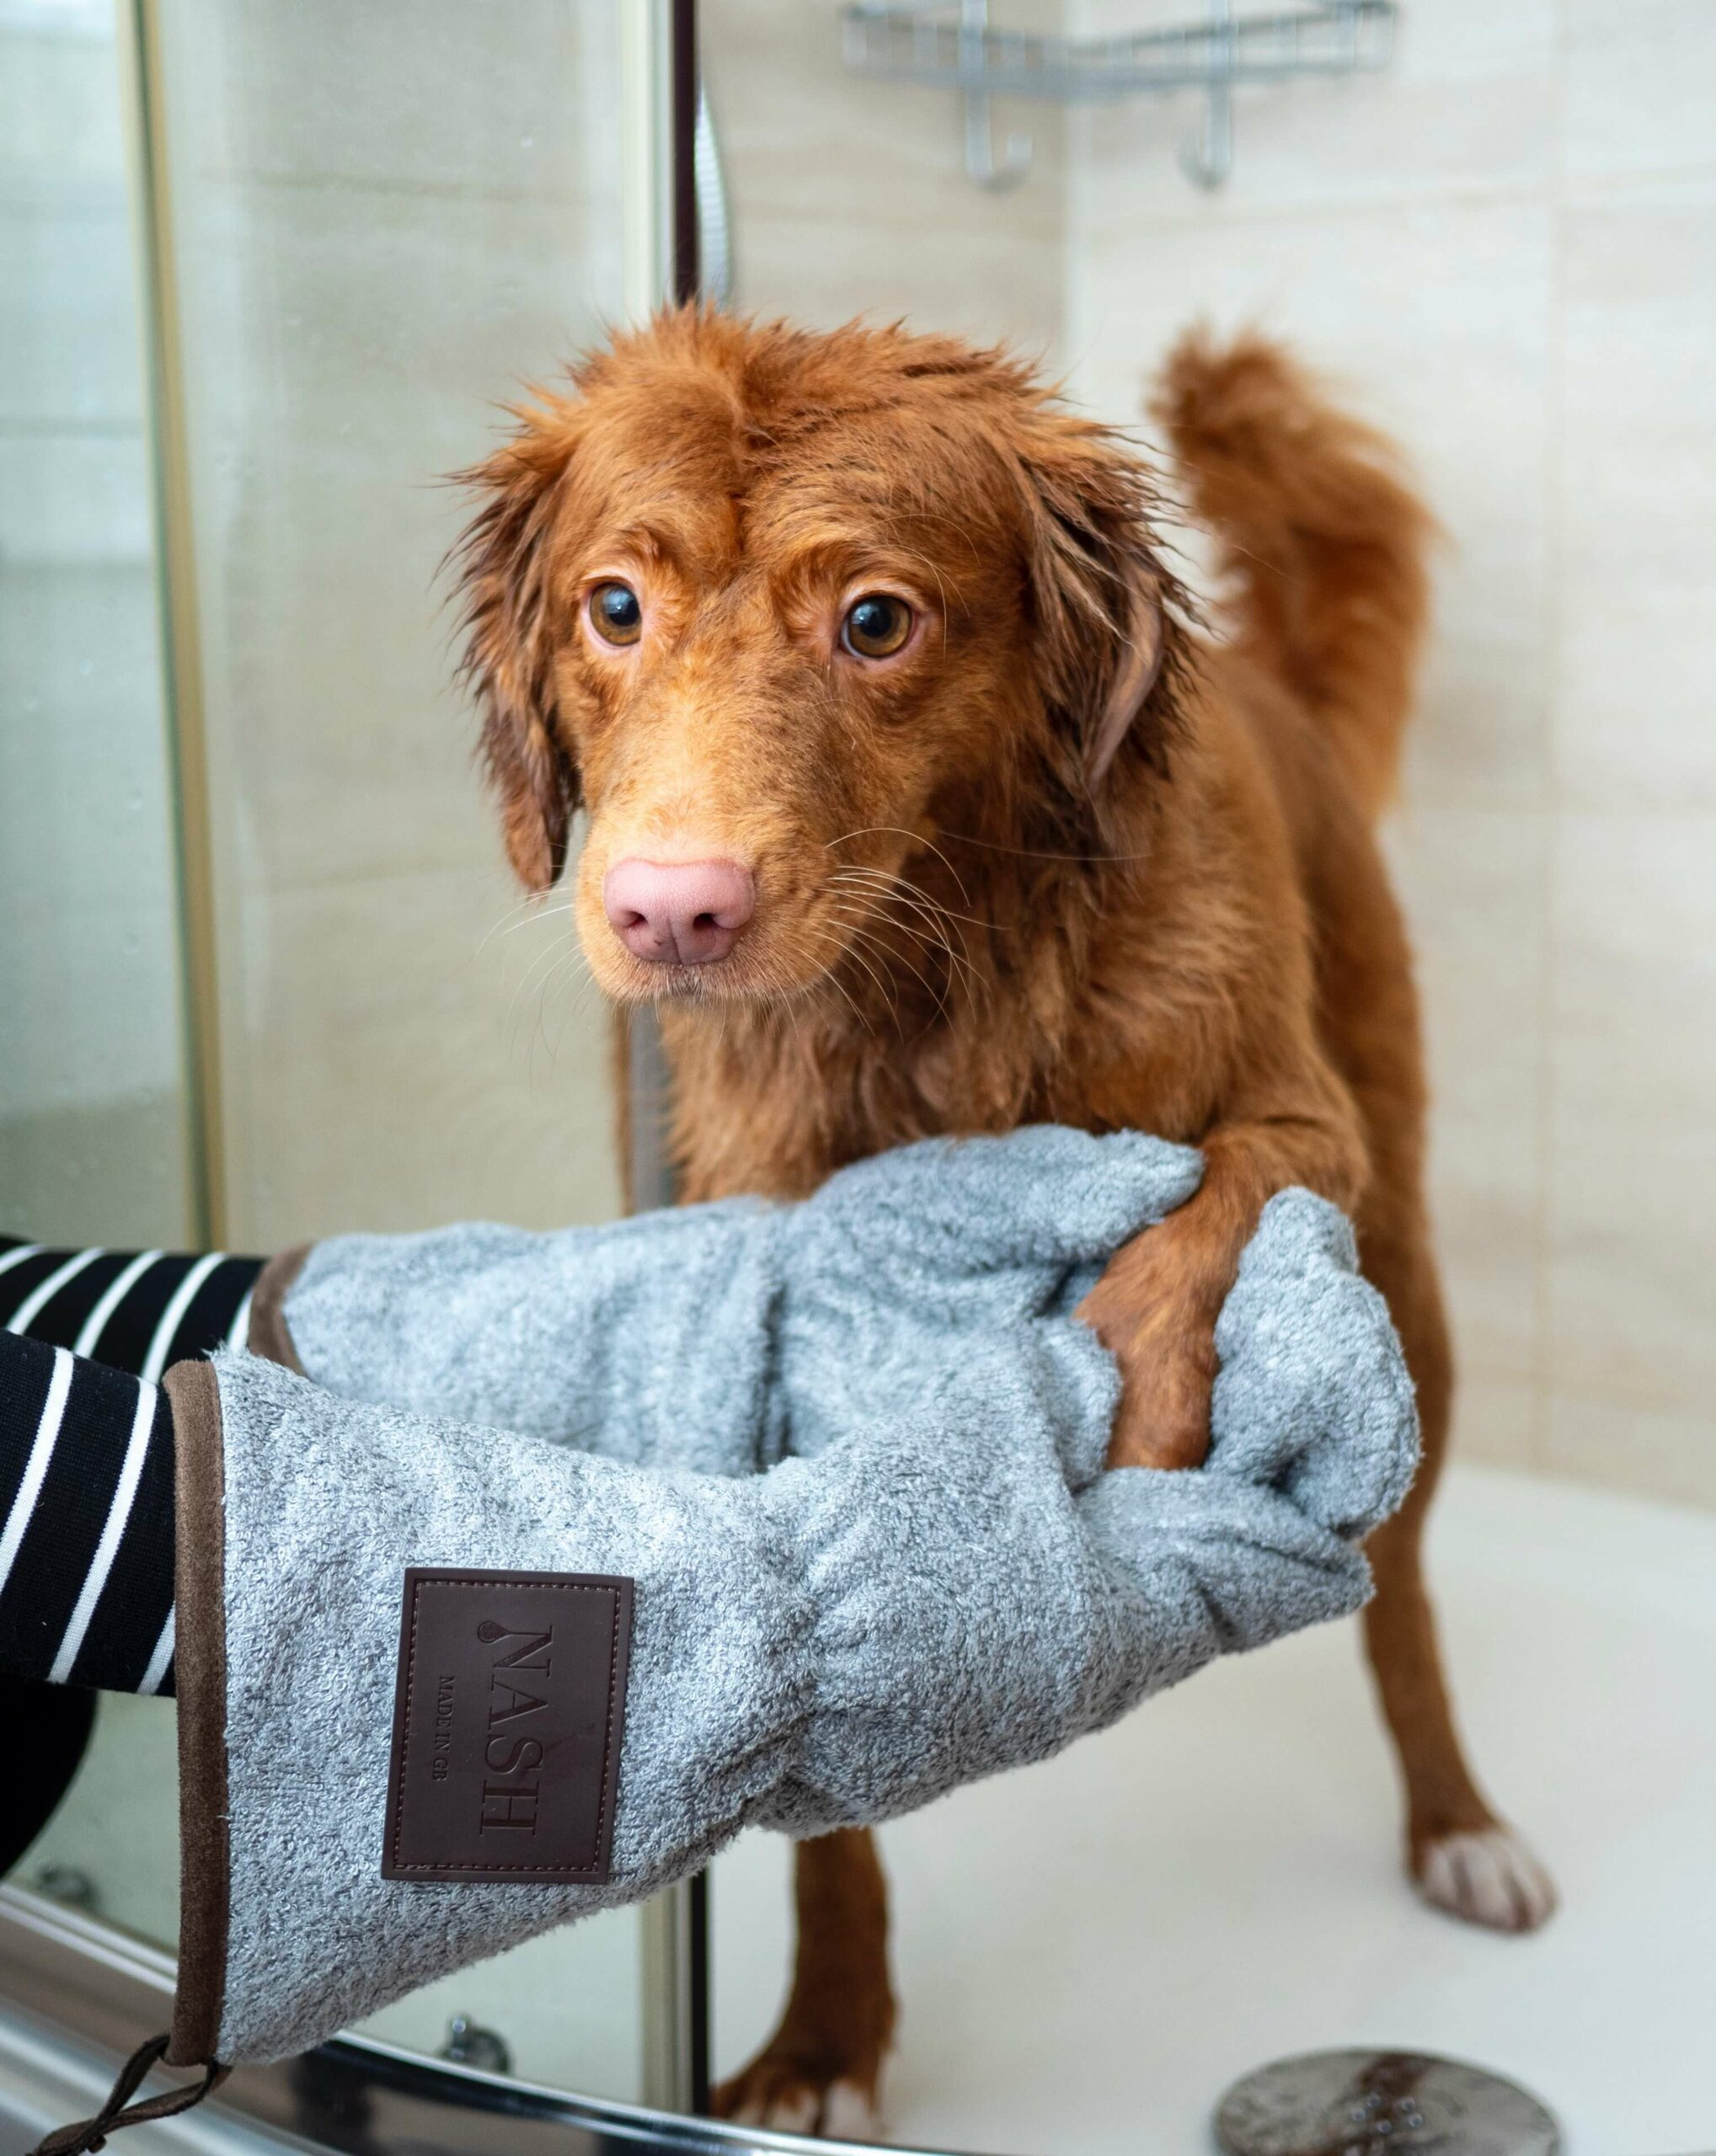 How to Wash a Dog without Making a Mess: 5 Easy Tips